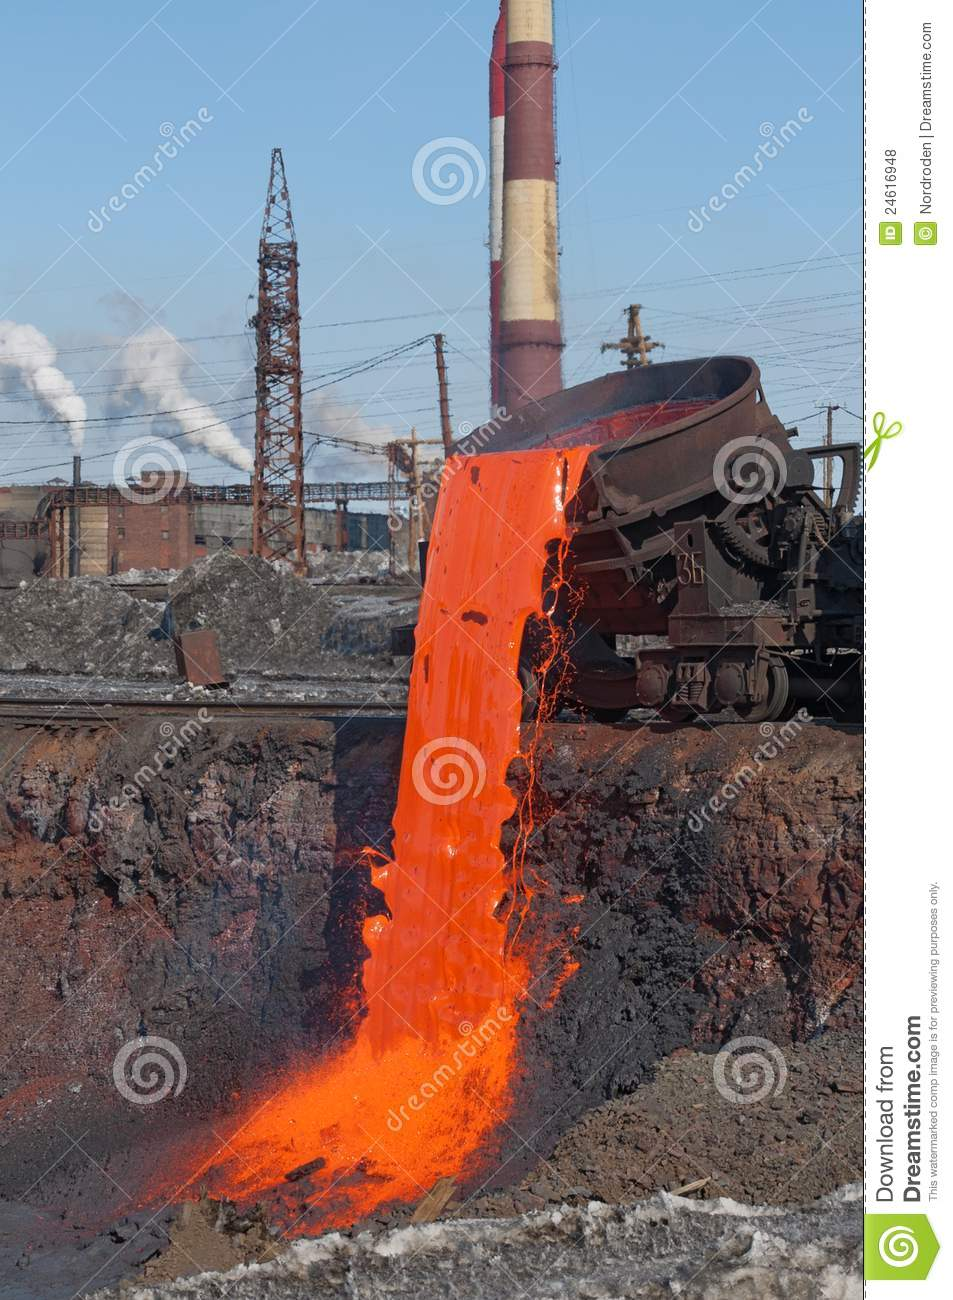 Slag Sawdust Melted : The molten steel is poured into dump stock photo